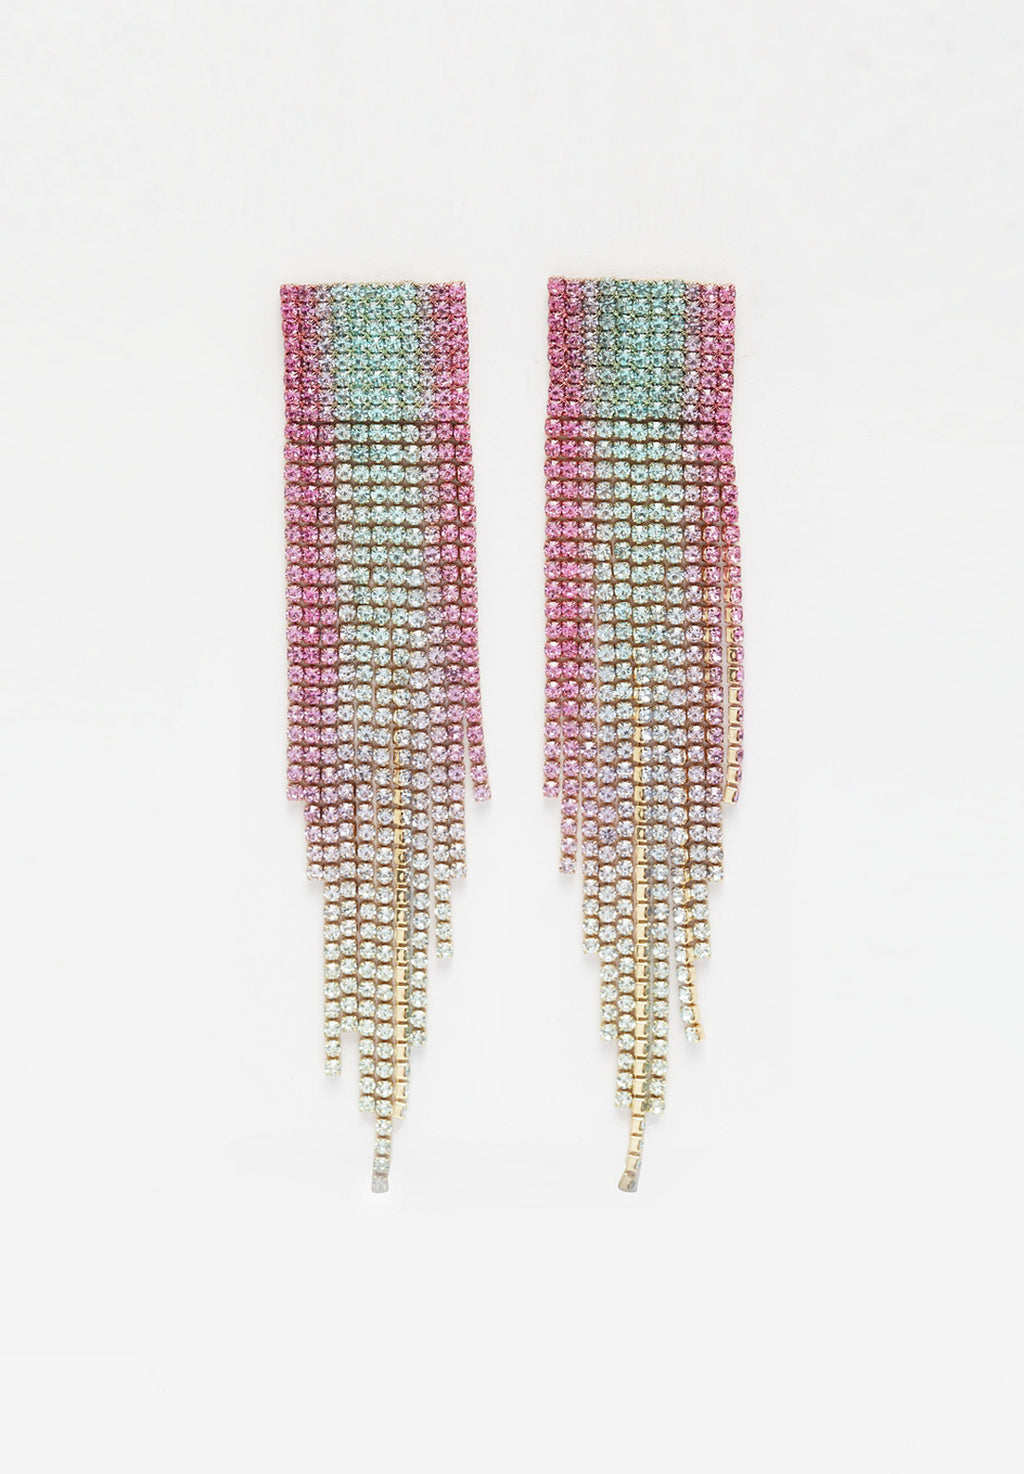 Avant-Garde Paris Bling Dangling Earrings With Crystals